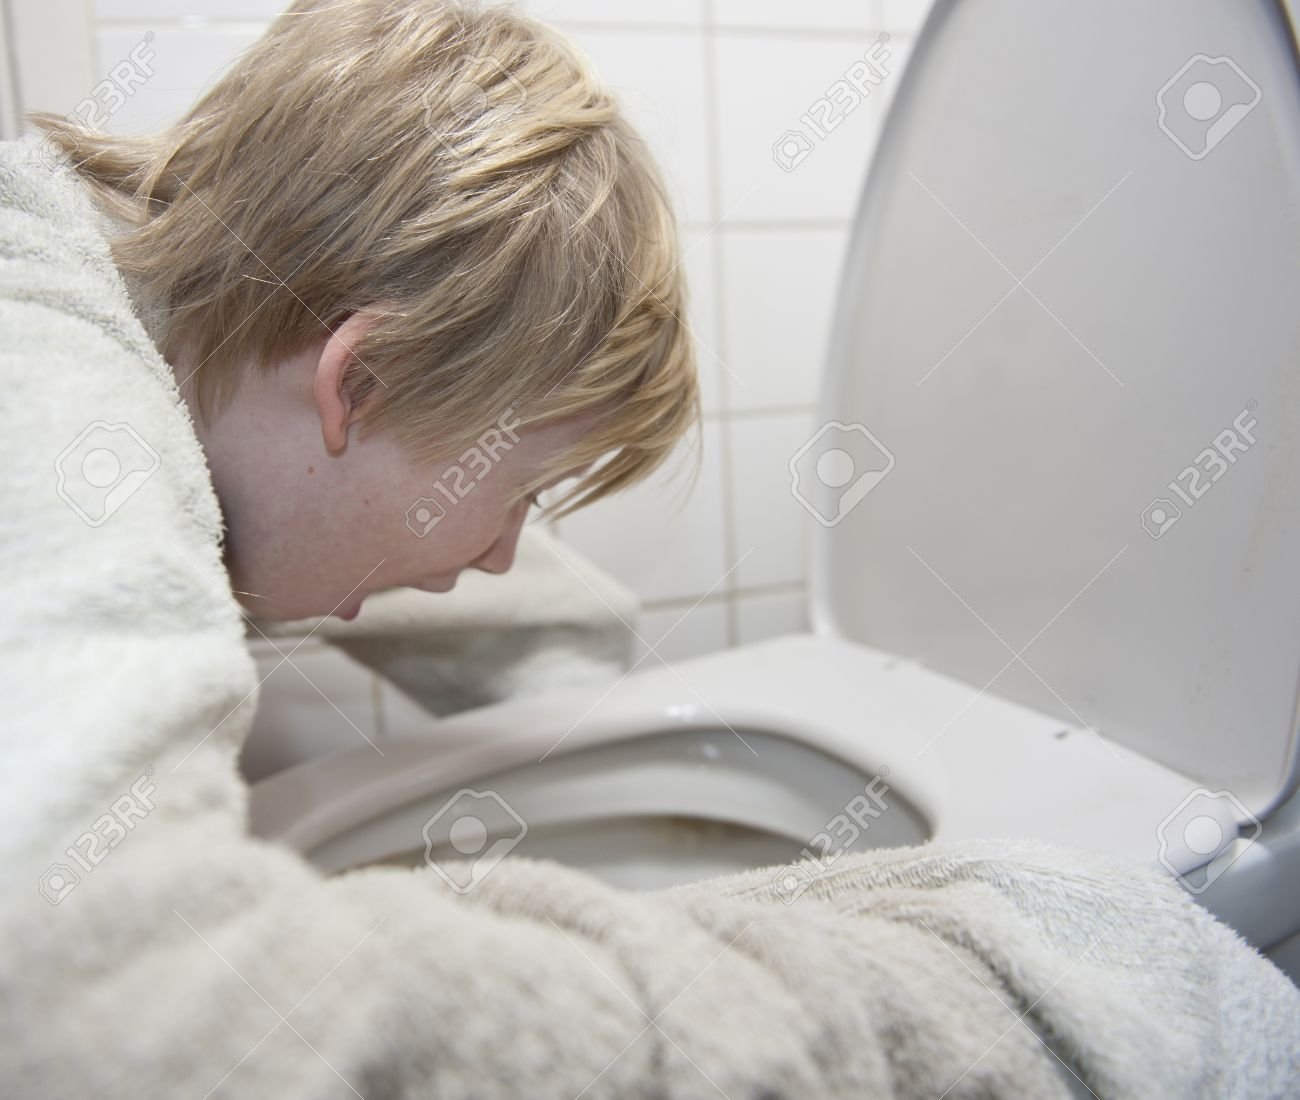 young boy and the toilets Stock Photo - Young boy with stomach flu vomiting in toilet